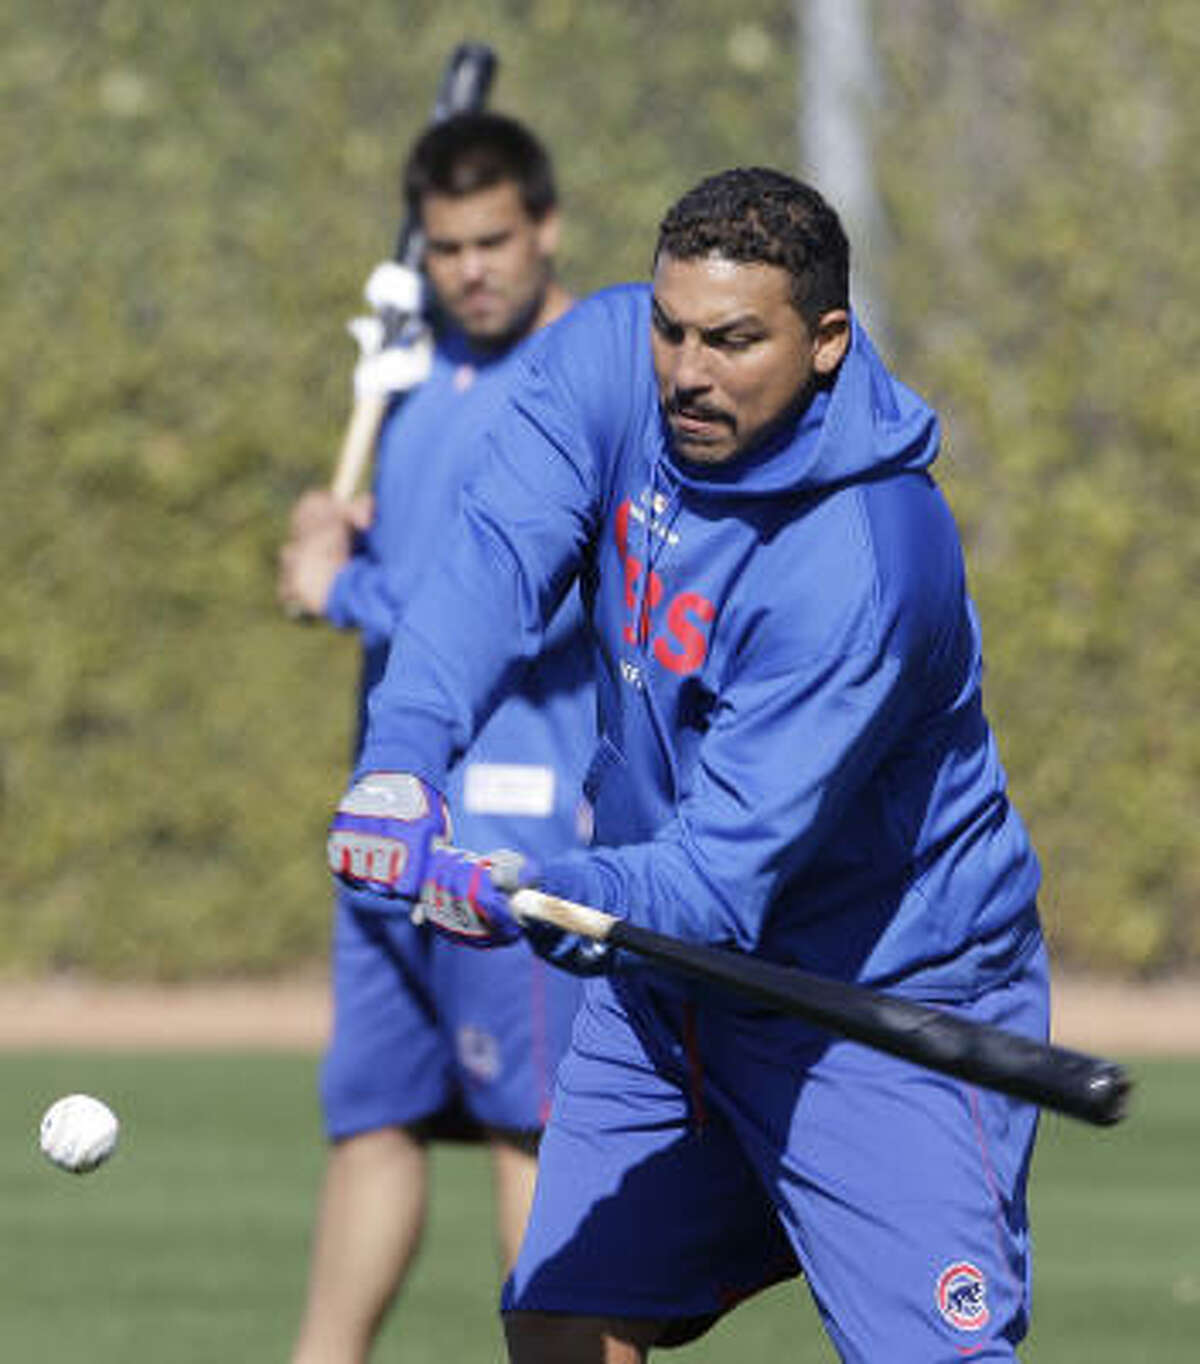 Chicago Cubs pitcher Carlos Zambrano practices his swing.